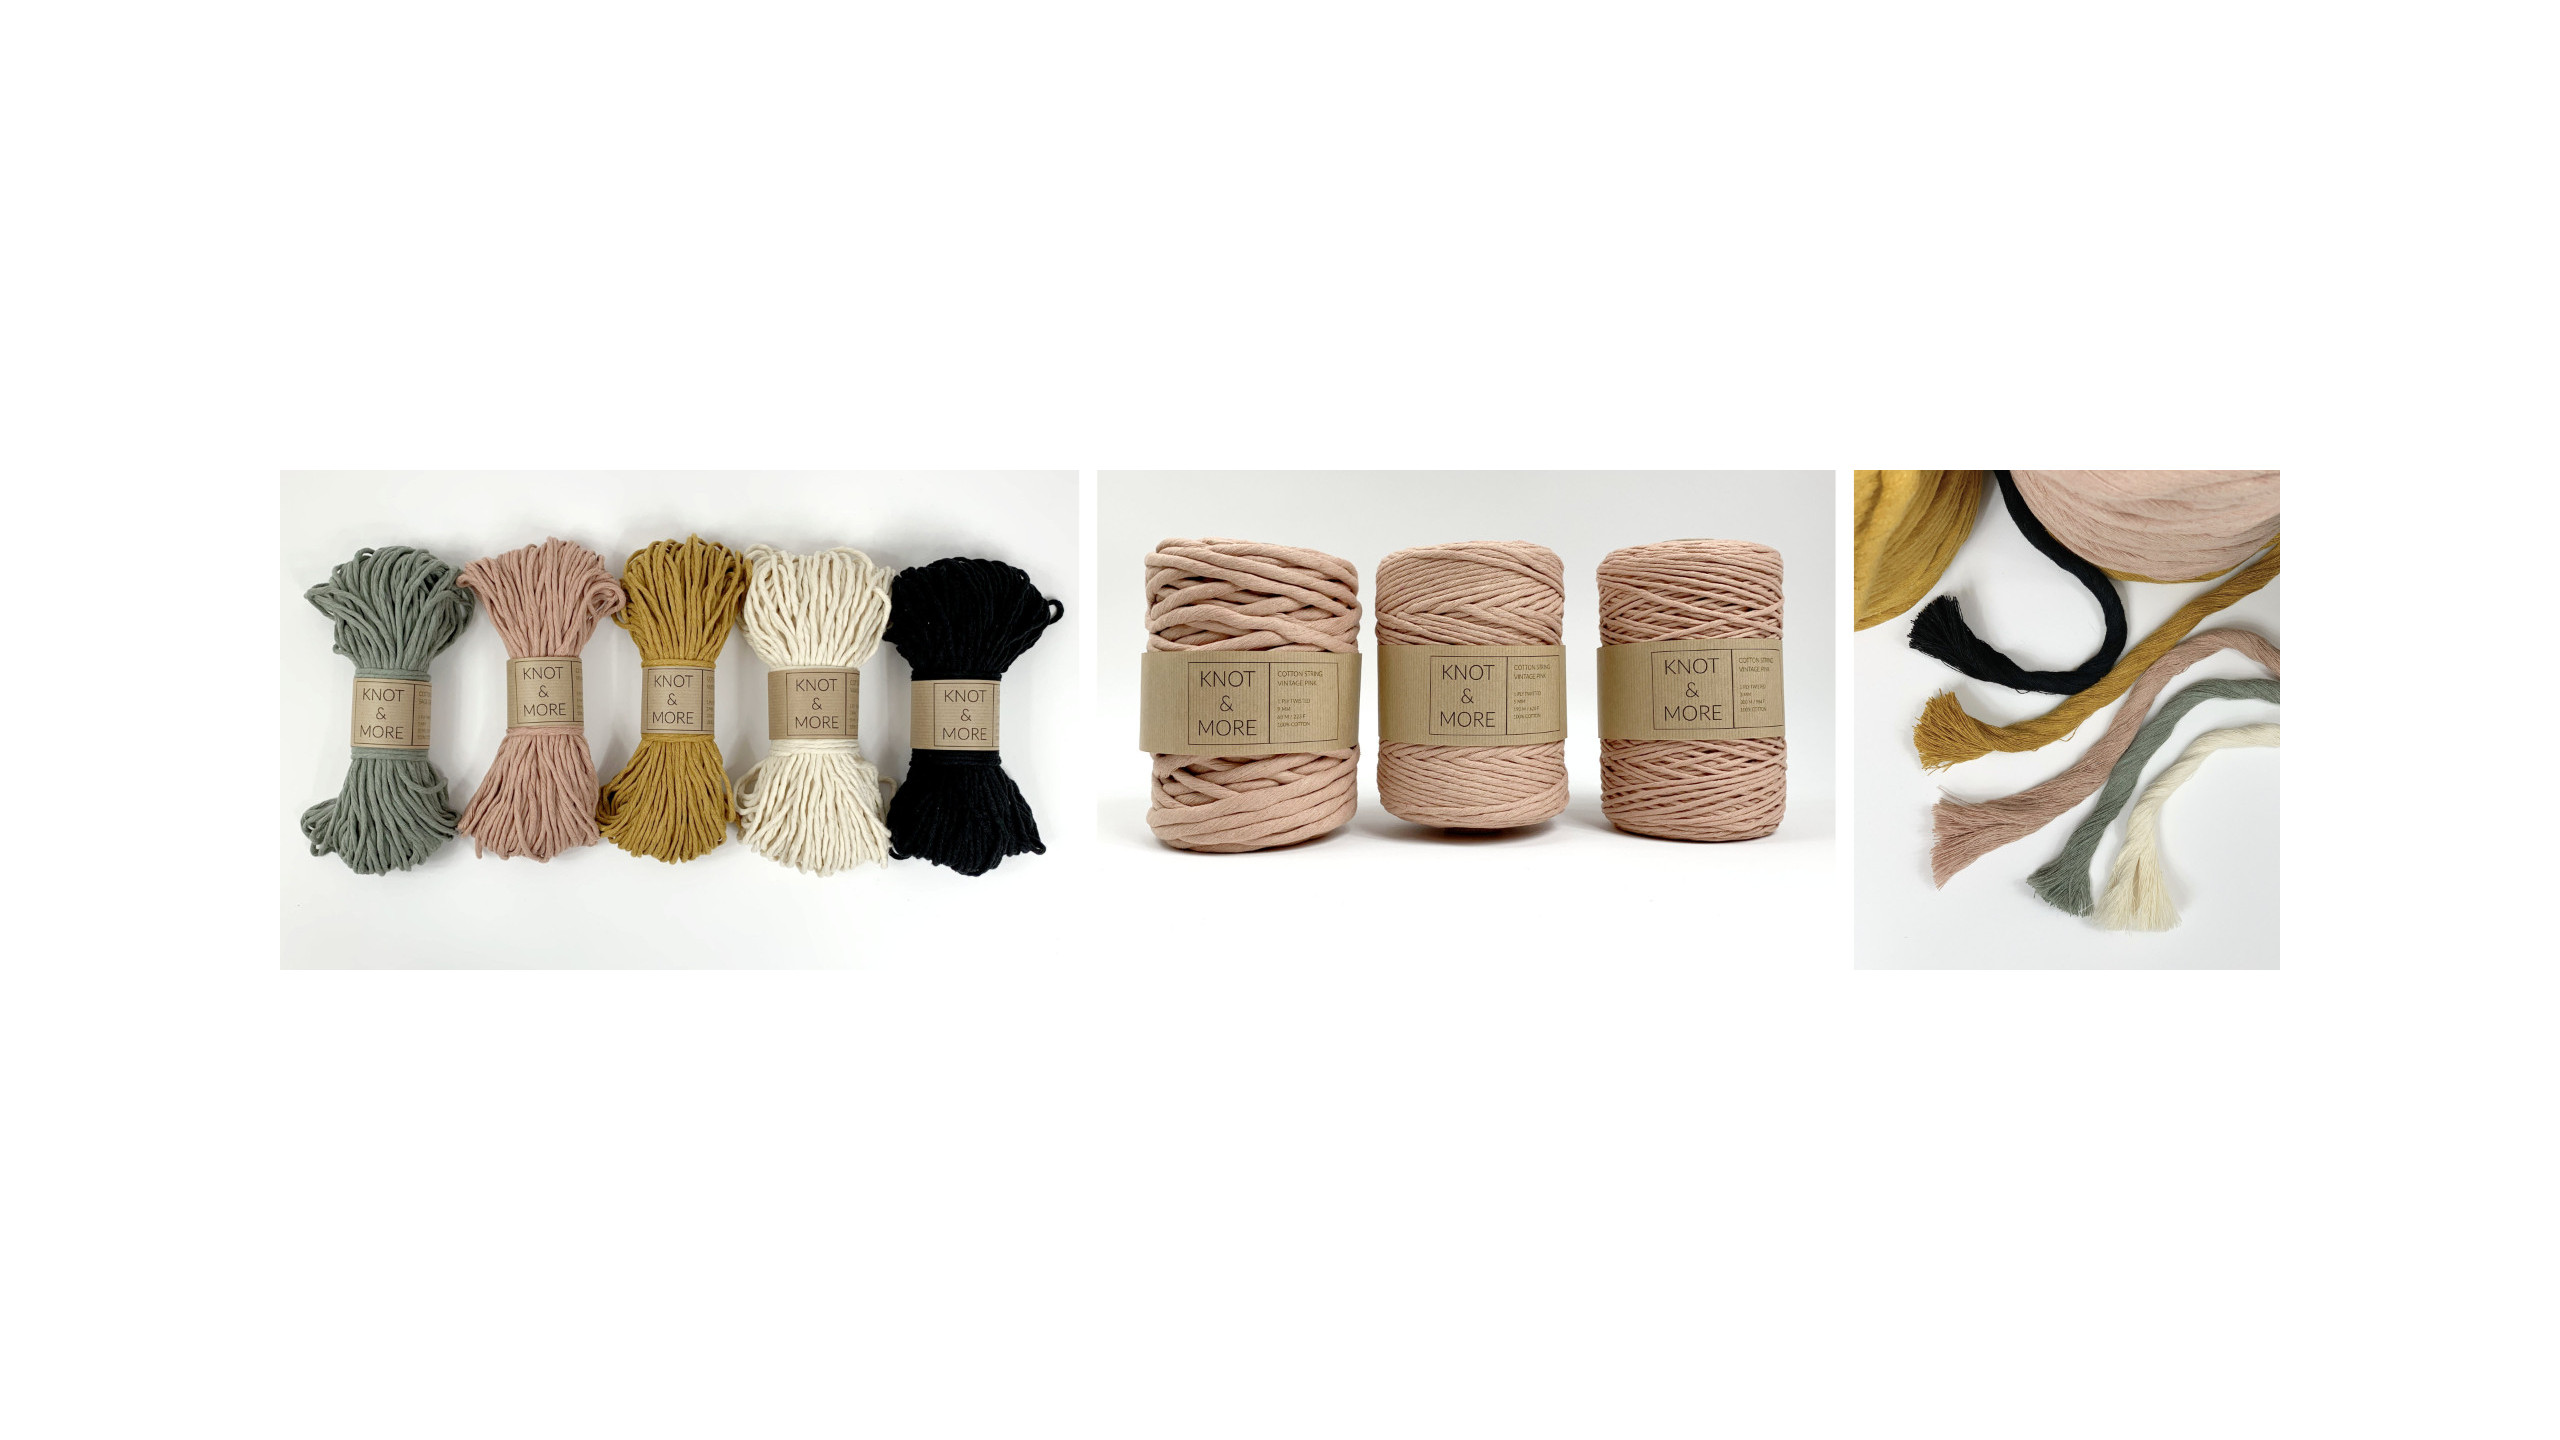 Macrame strings - Knot and More